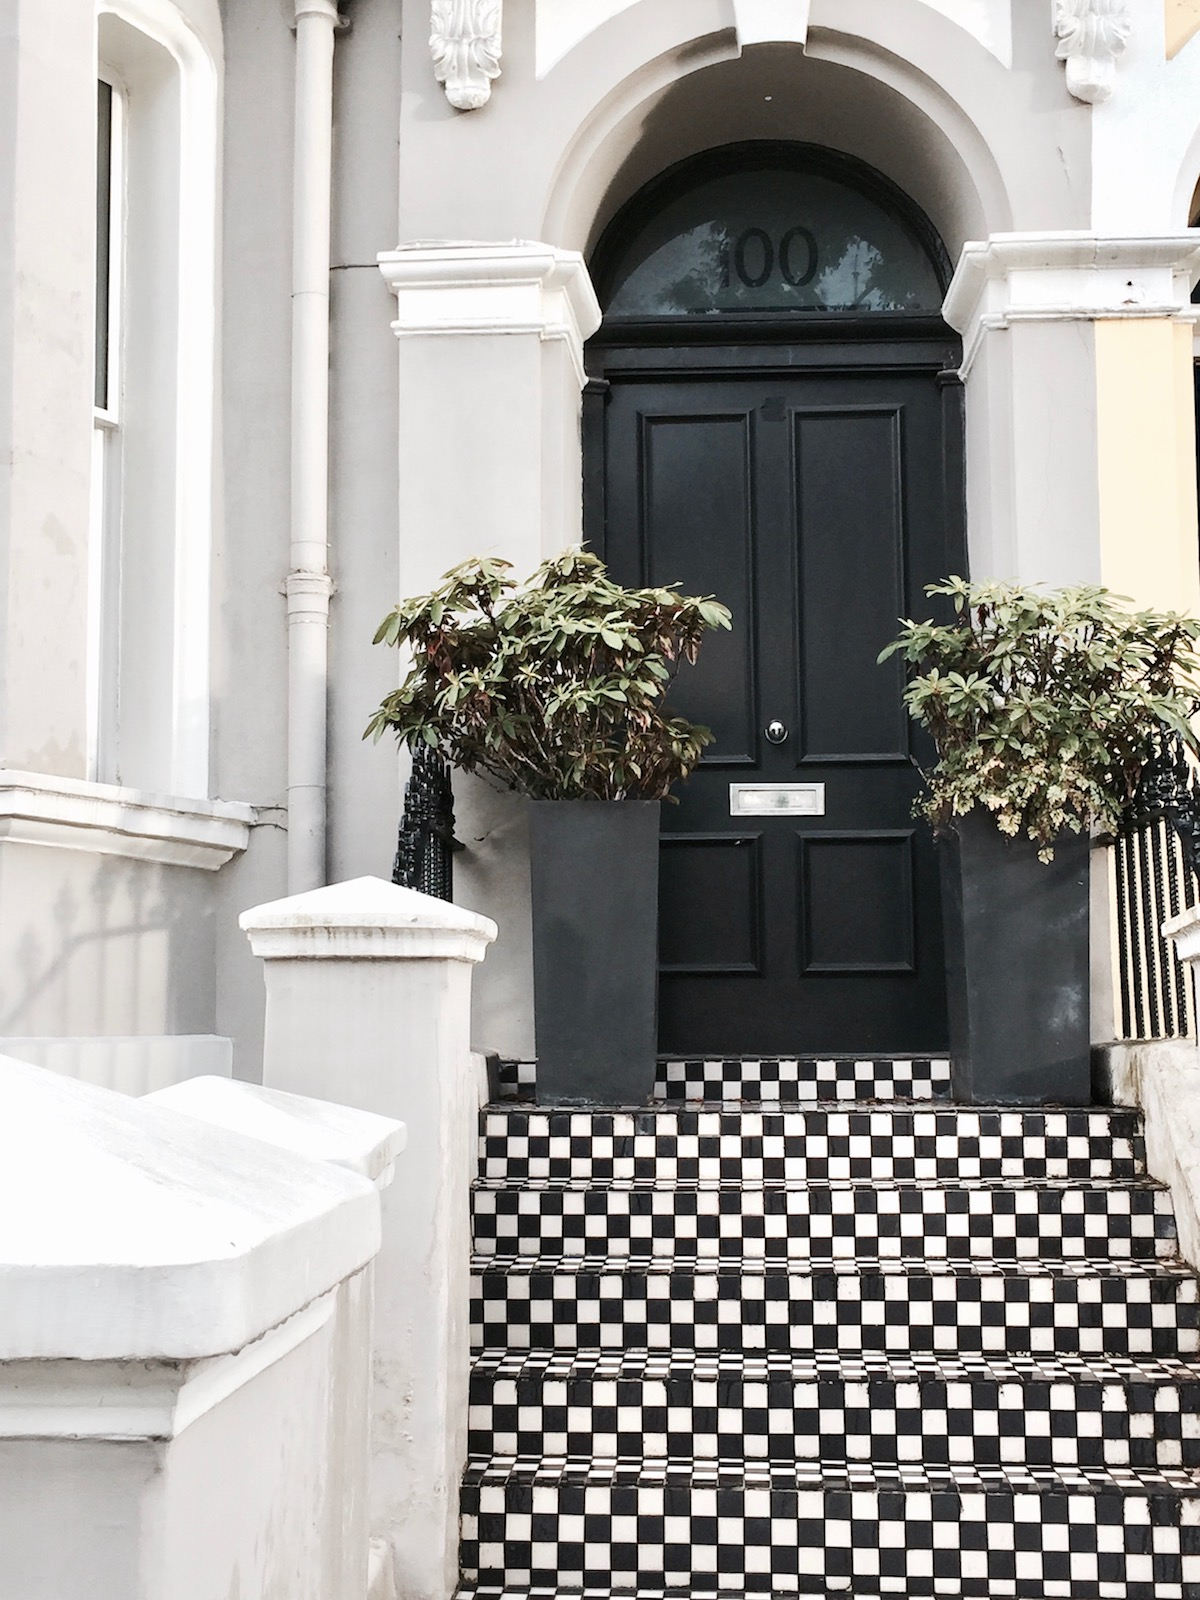 Notting Hill Walk Walking Route Tour Travel Diary www.theblondelion.com